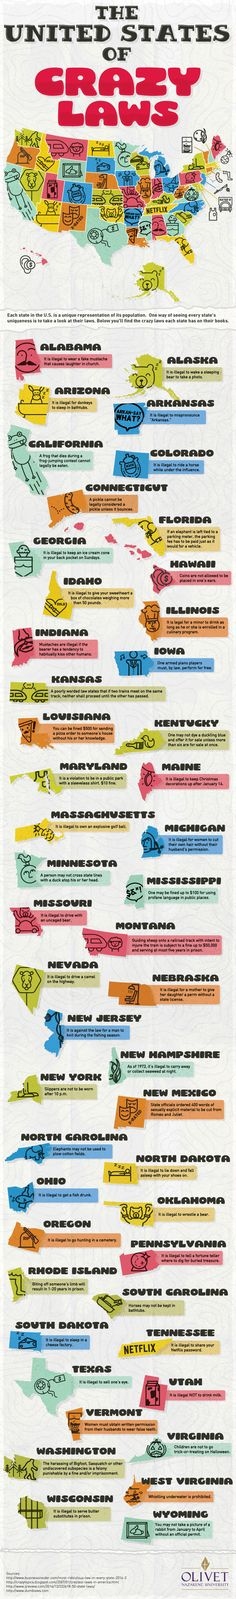 The United States of Crazy Laws #Infographic ~ Visualistan